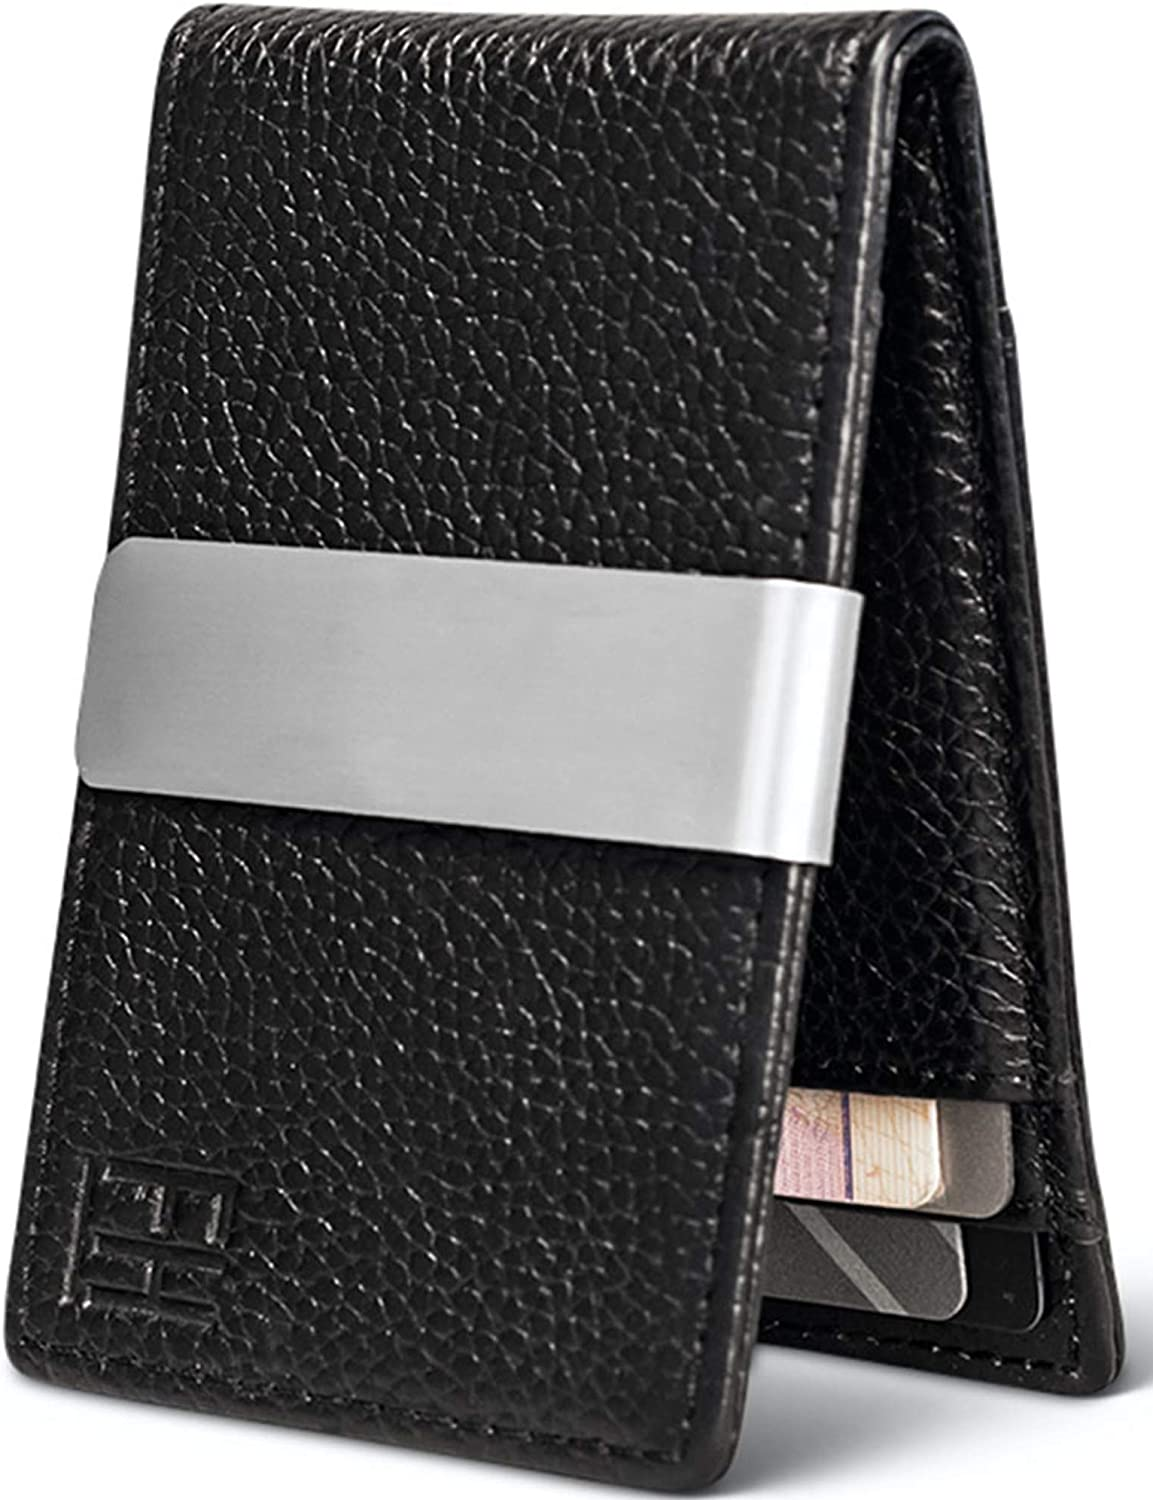 Max 56% OFF FH Minimalist Slim Leather Wallet 8 Outstanding Holds Money Cards Clip